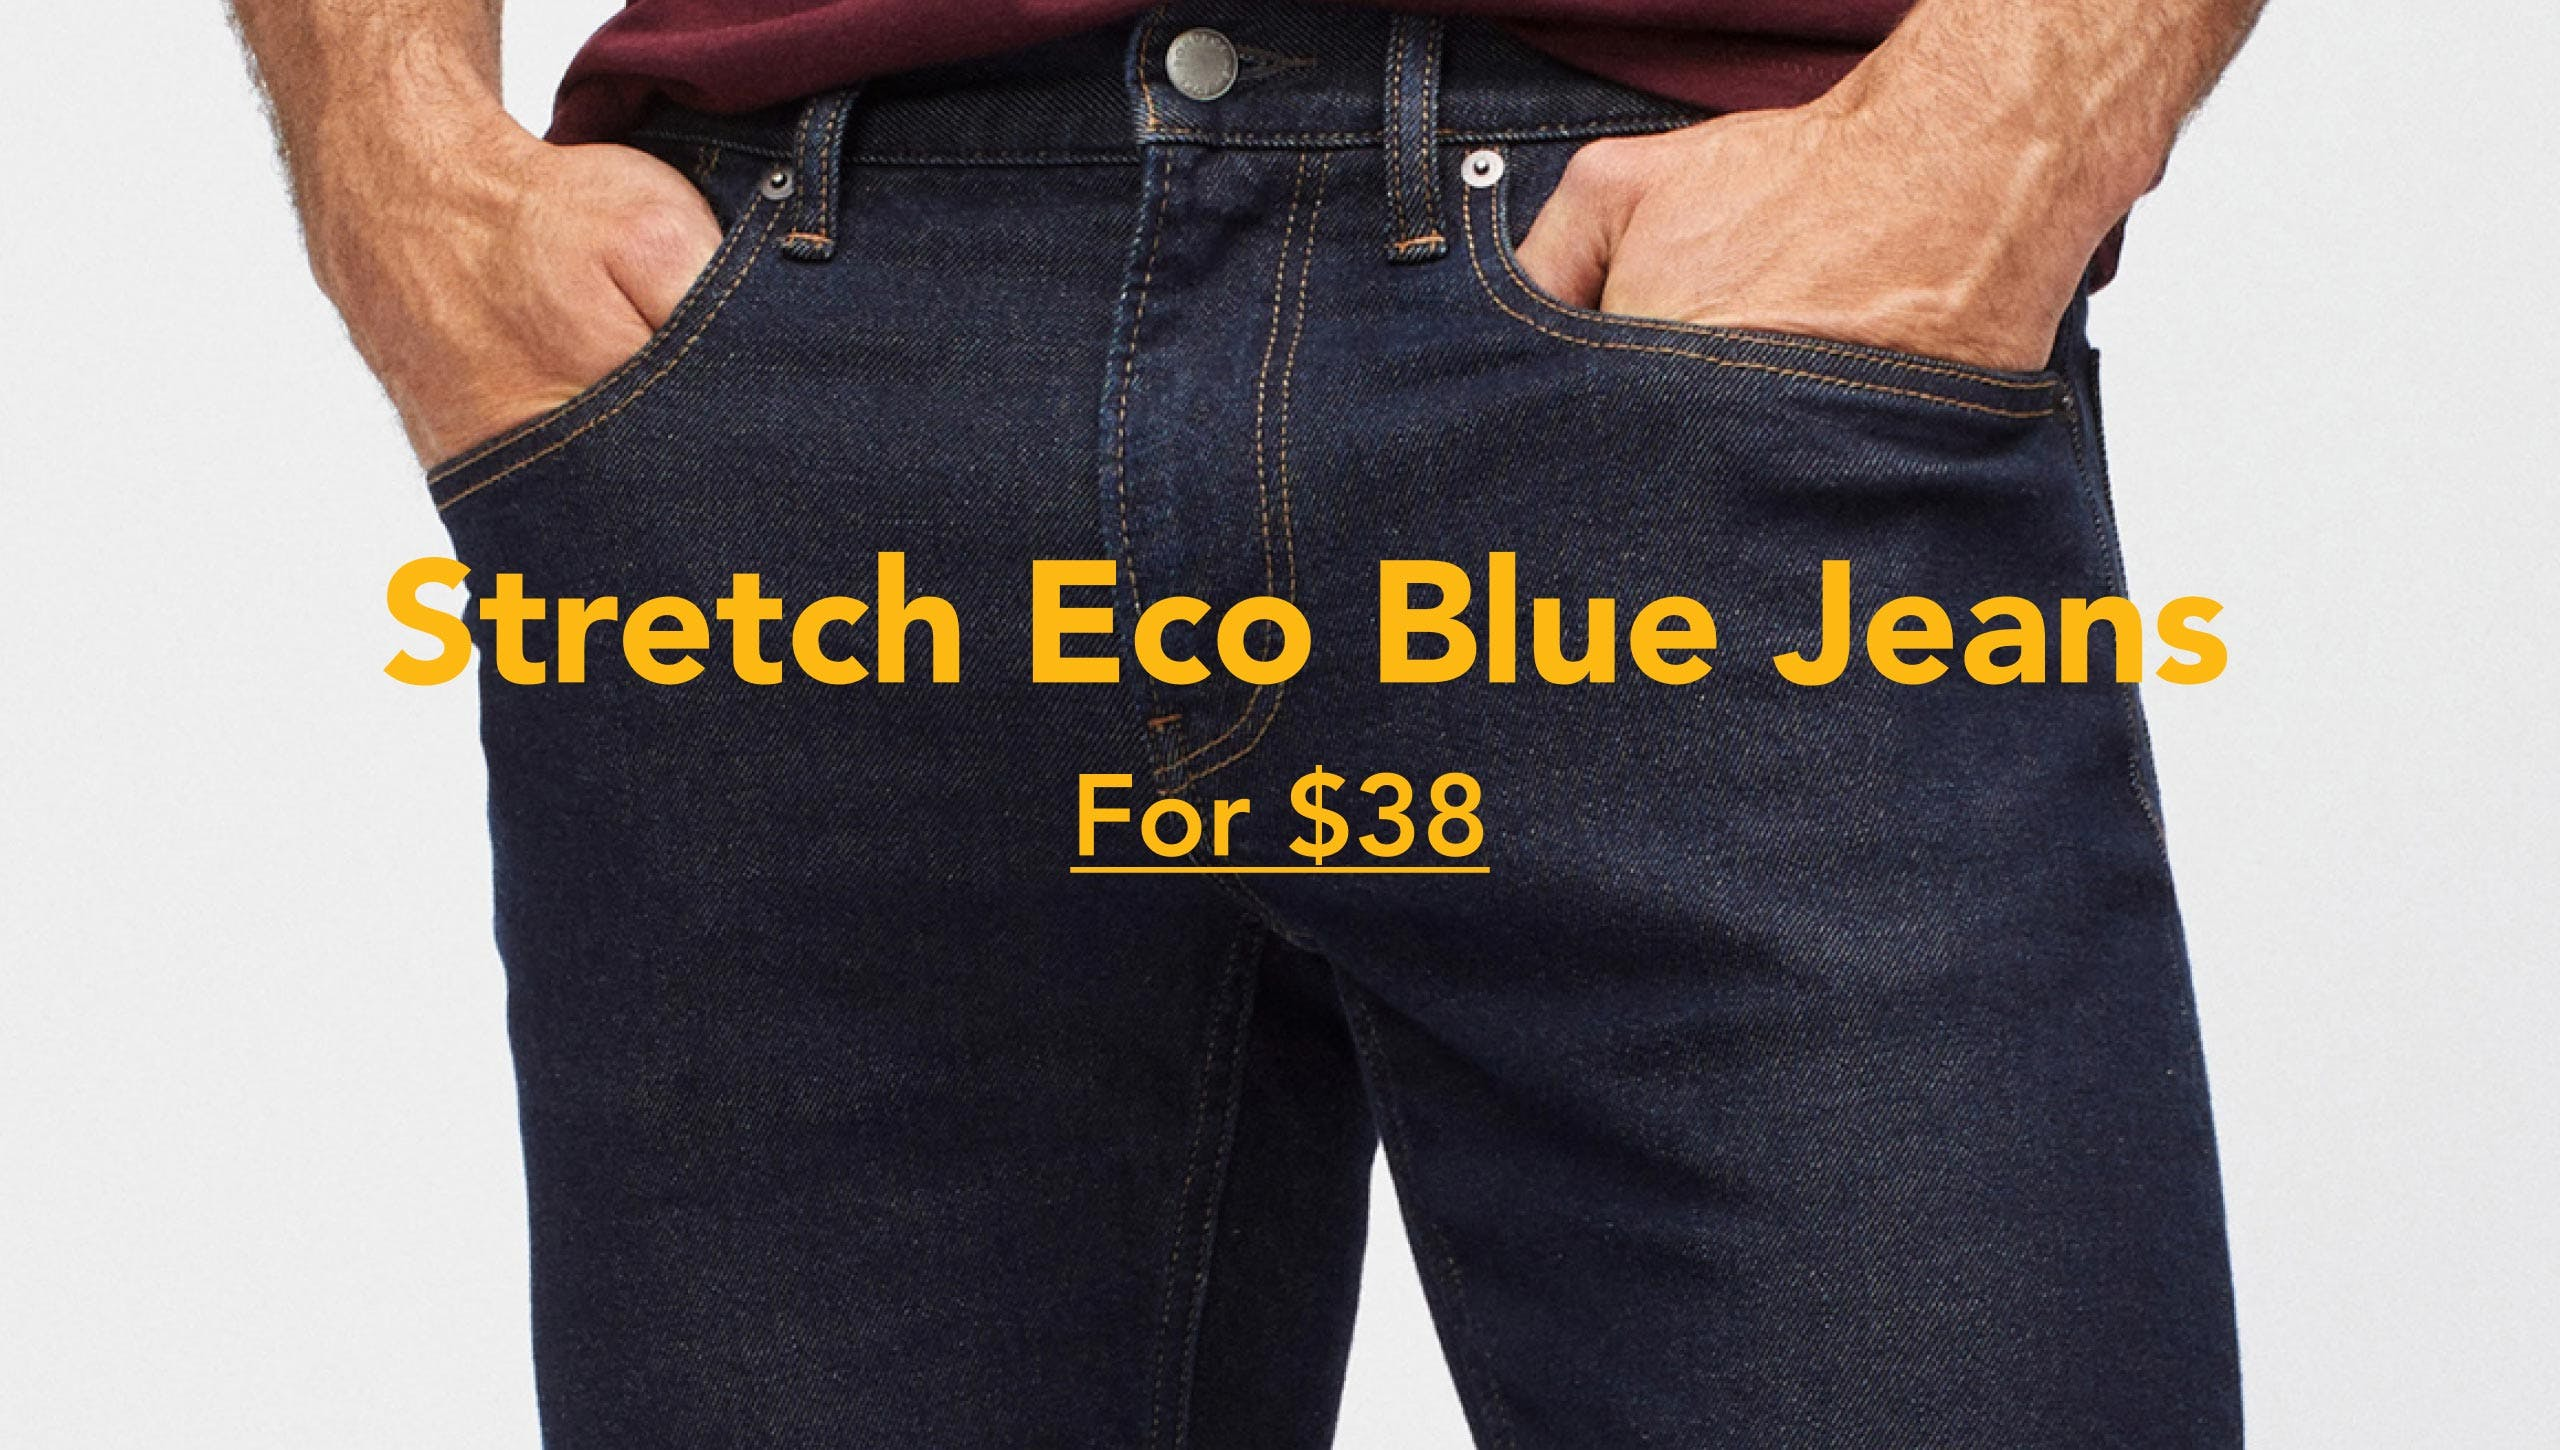 Stretch Eco Blue Jeans for $38